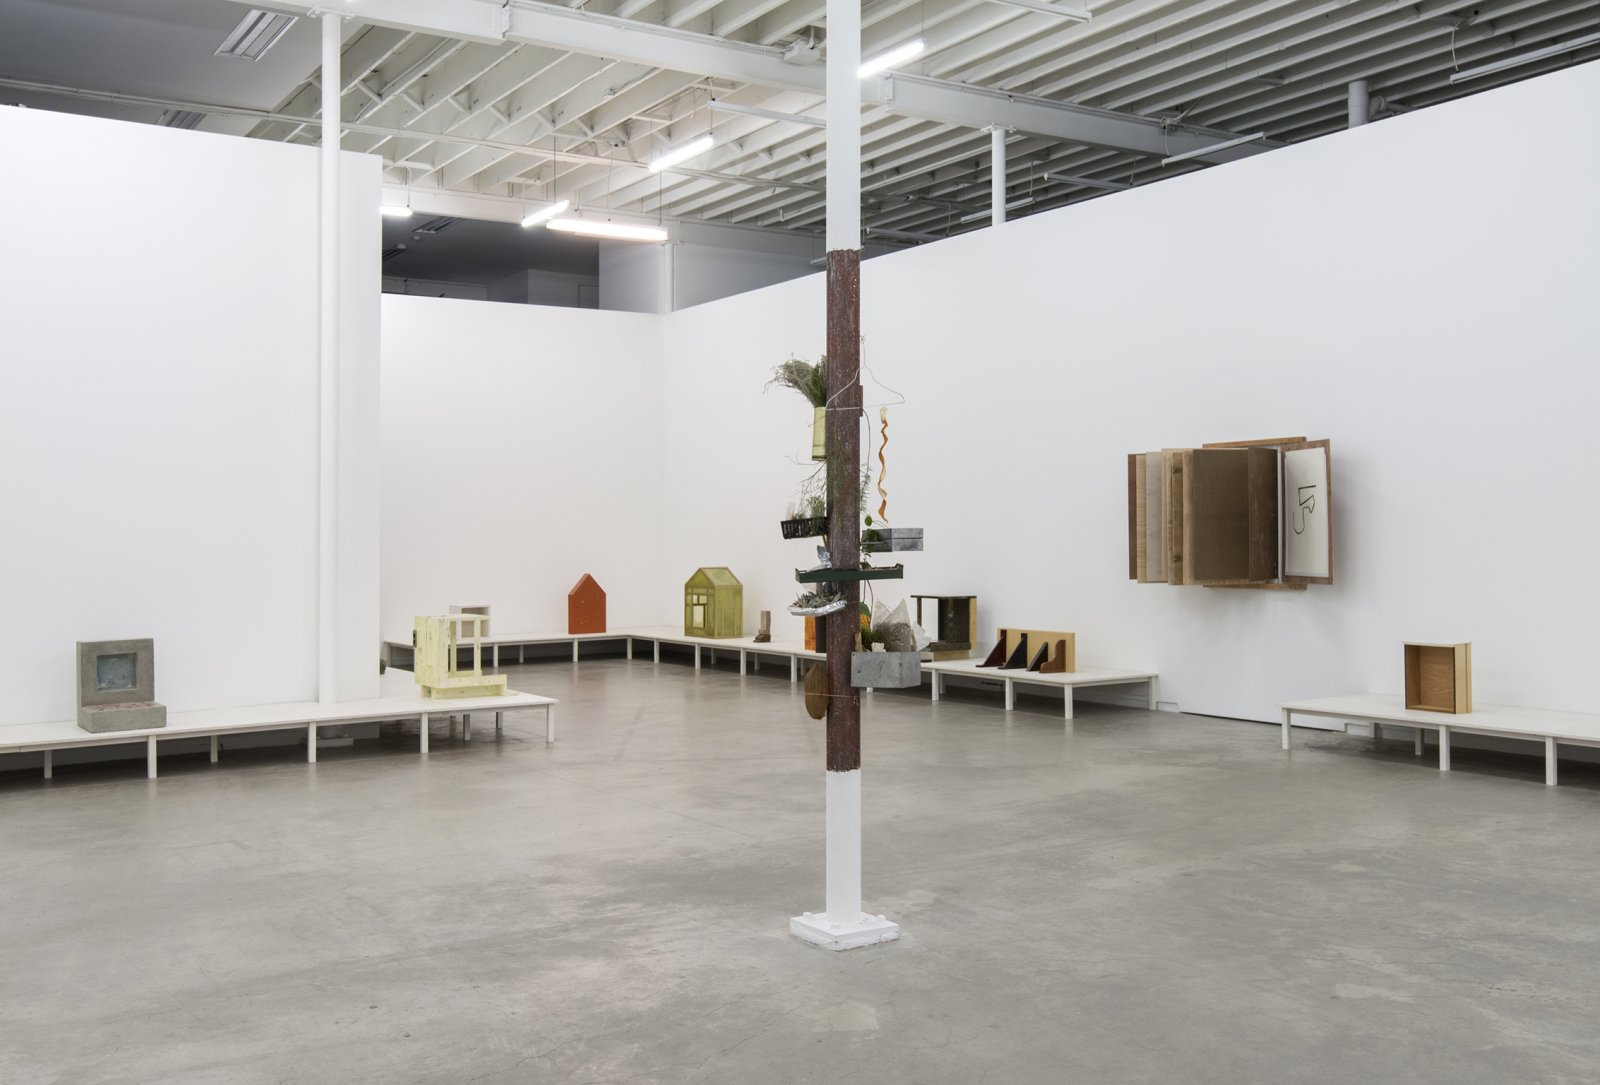 Gareth Moore, installation view, Household Temple Yard, Catriona Jeffries, 2013  by Ashes Withyman